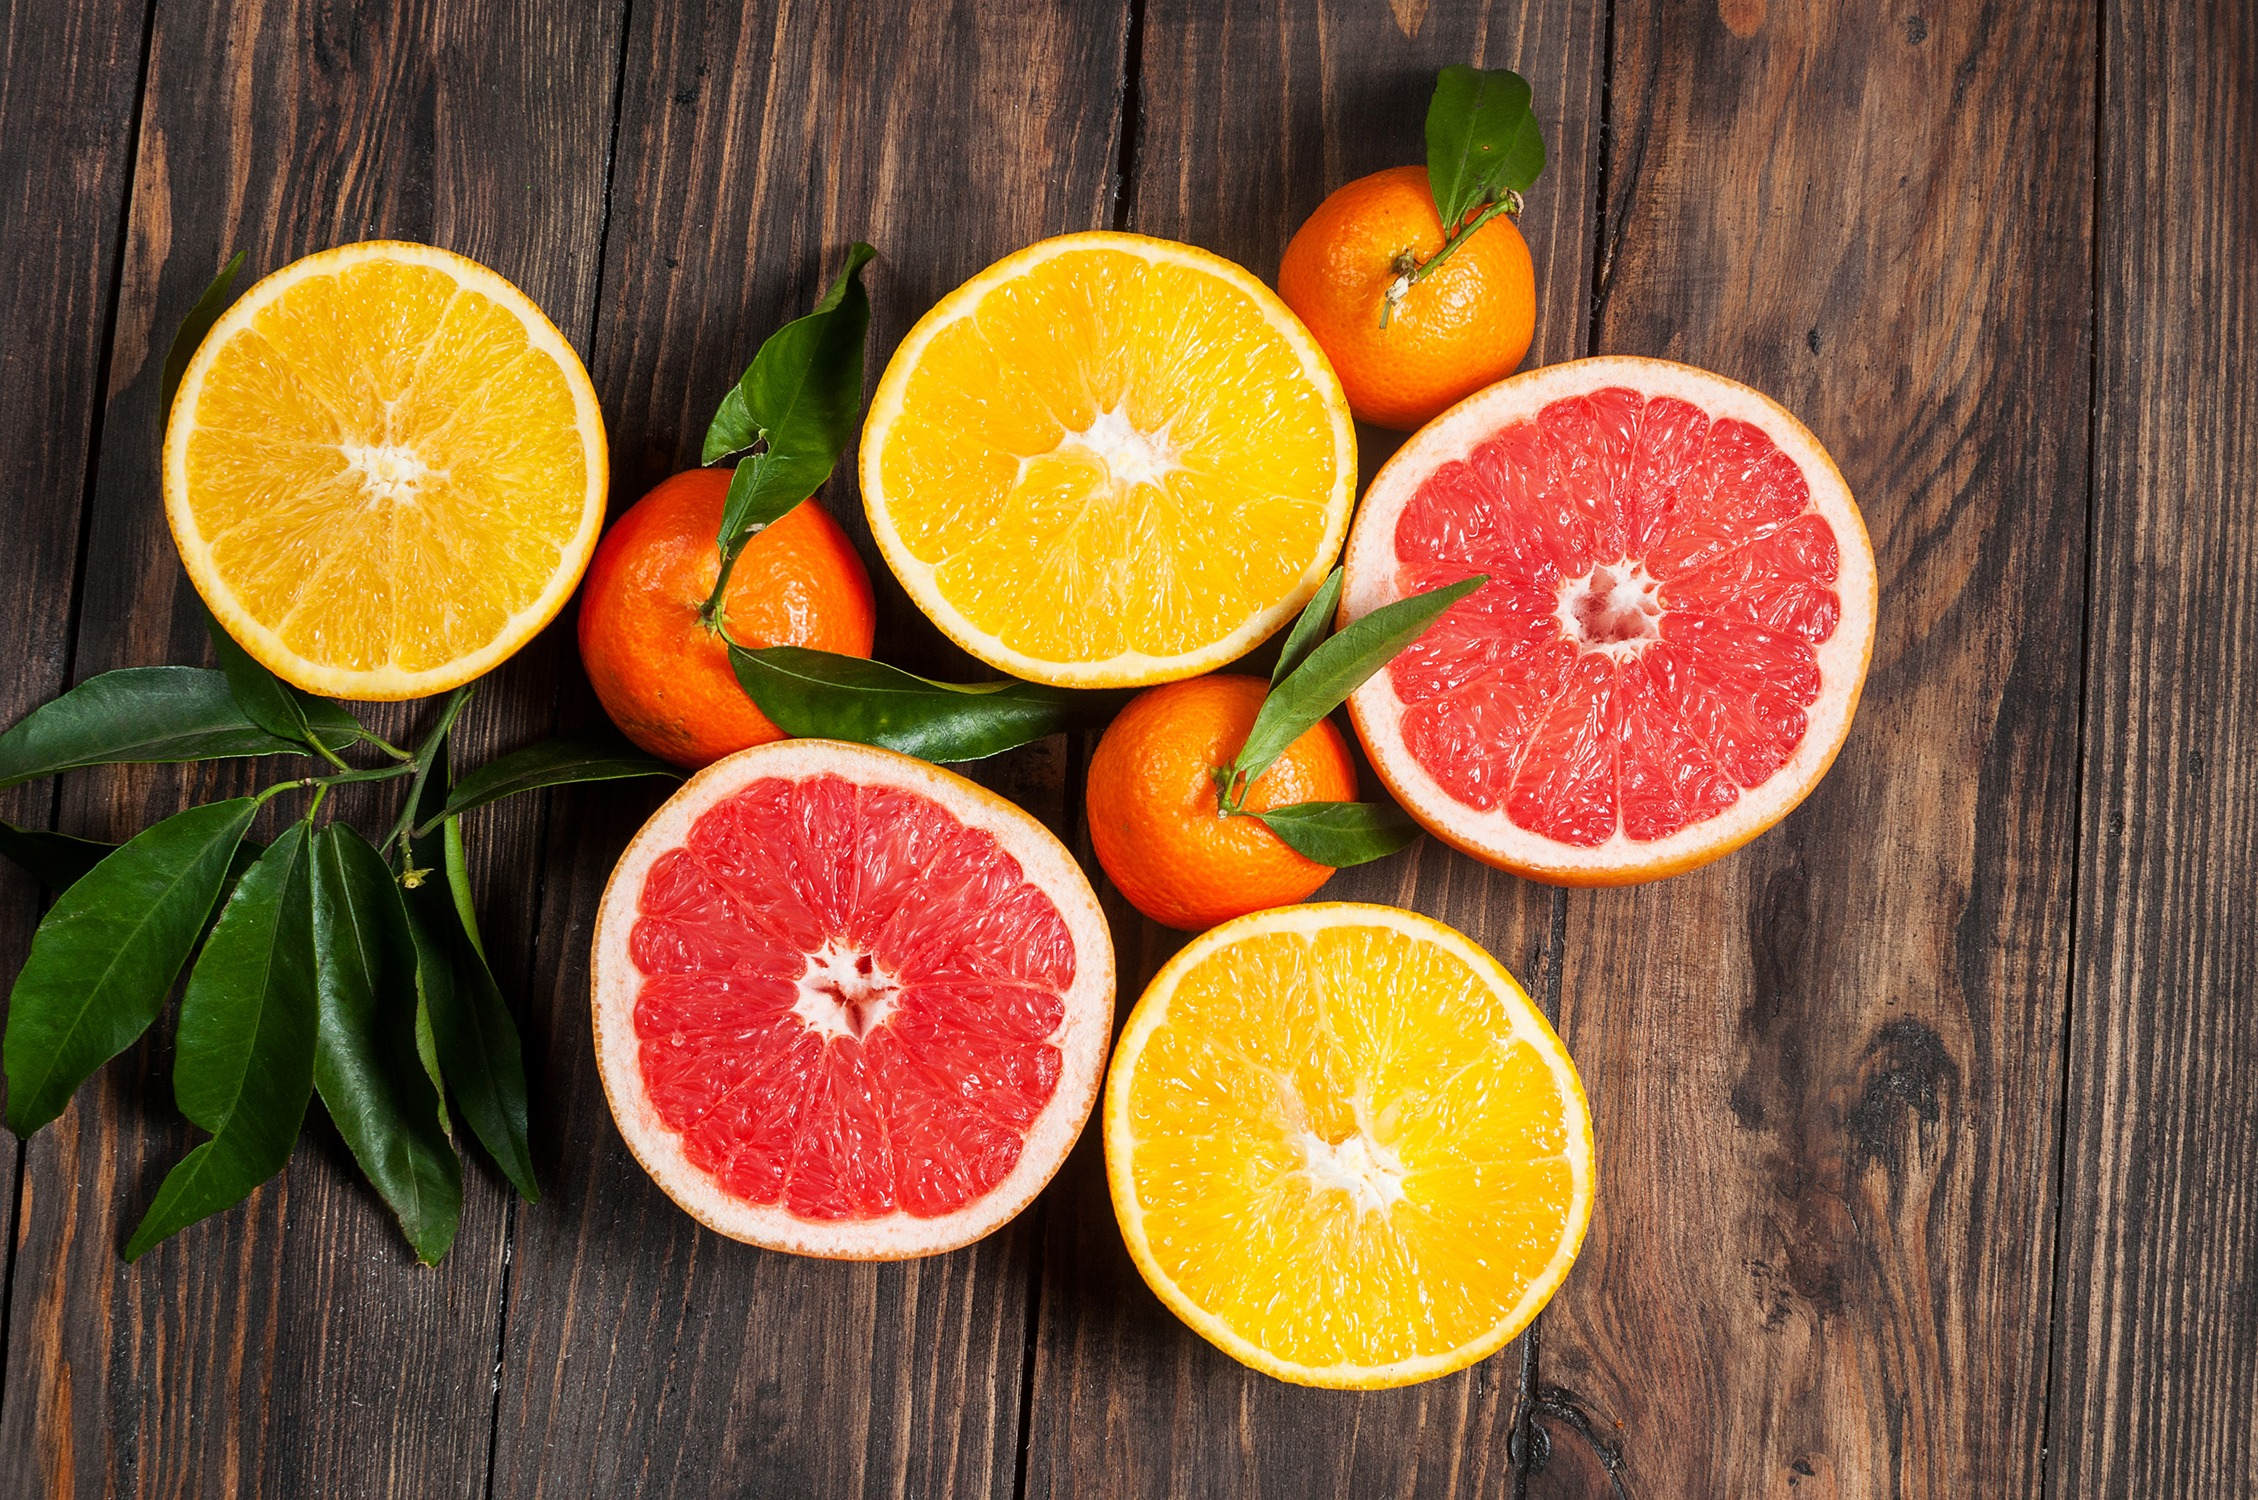 citrus fruits are good